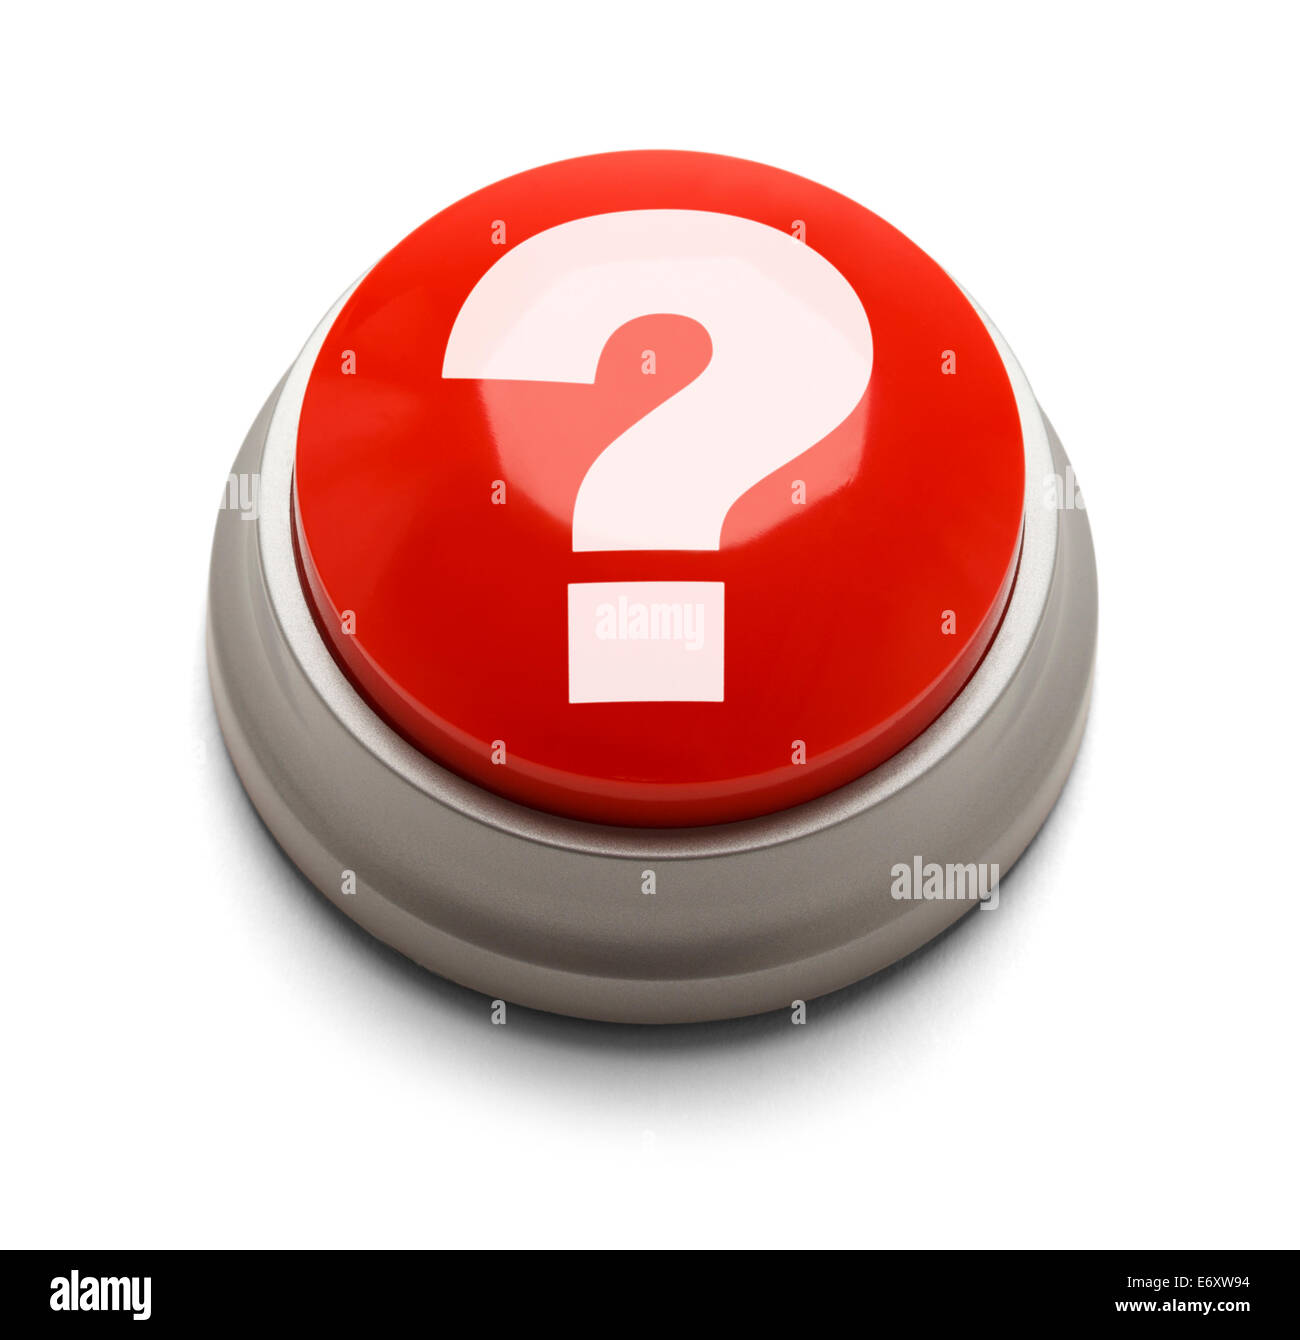 Red button with question mark isolated on a white background. - Stock Image